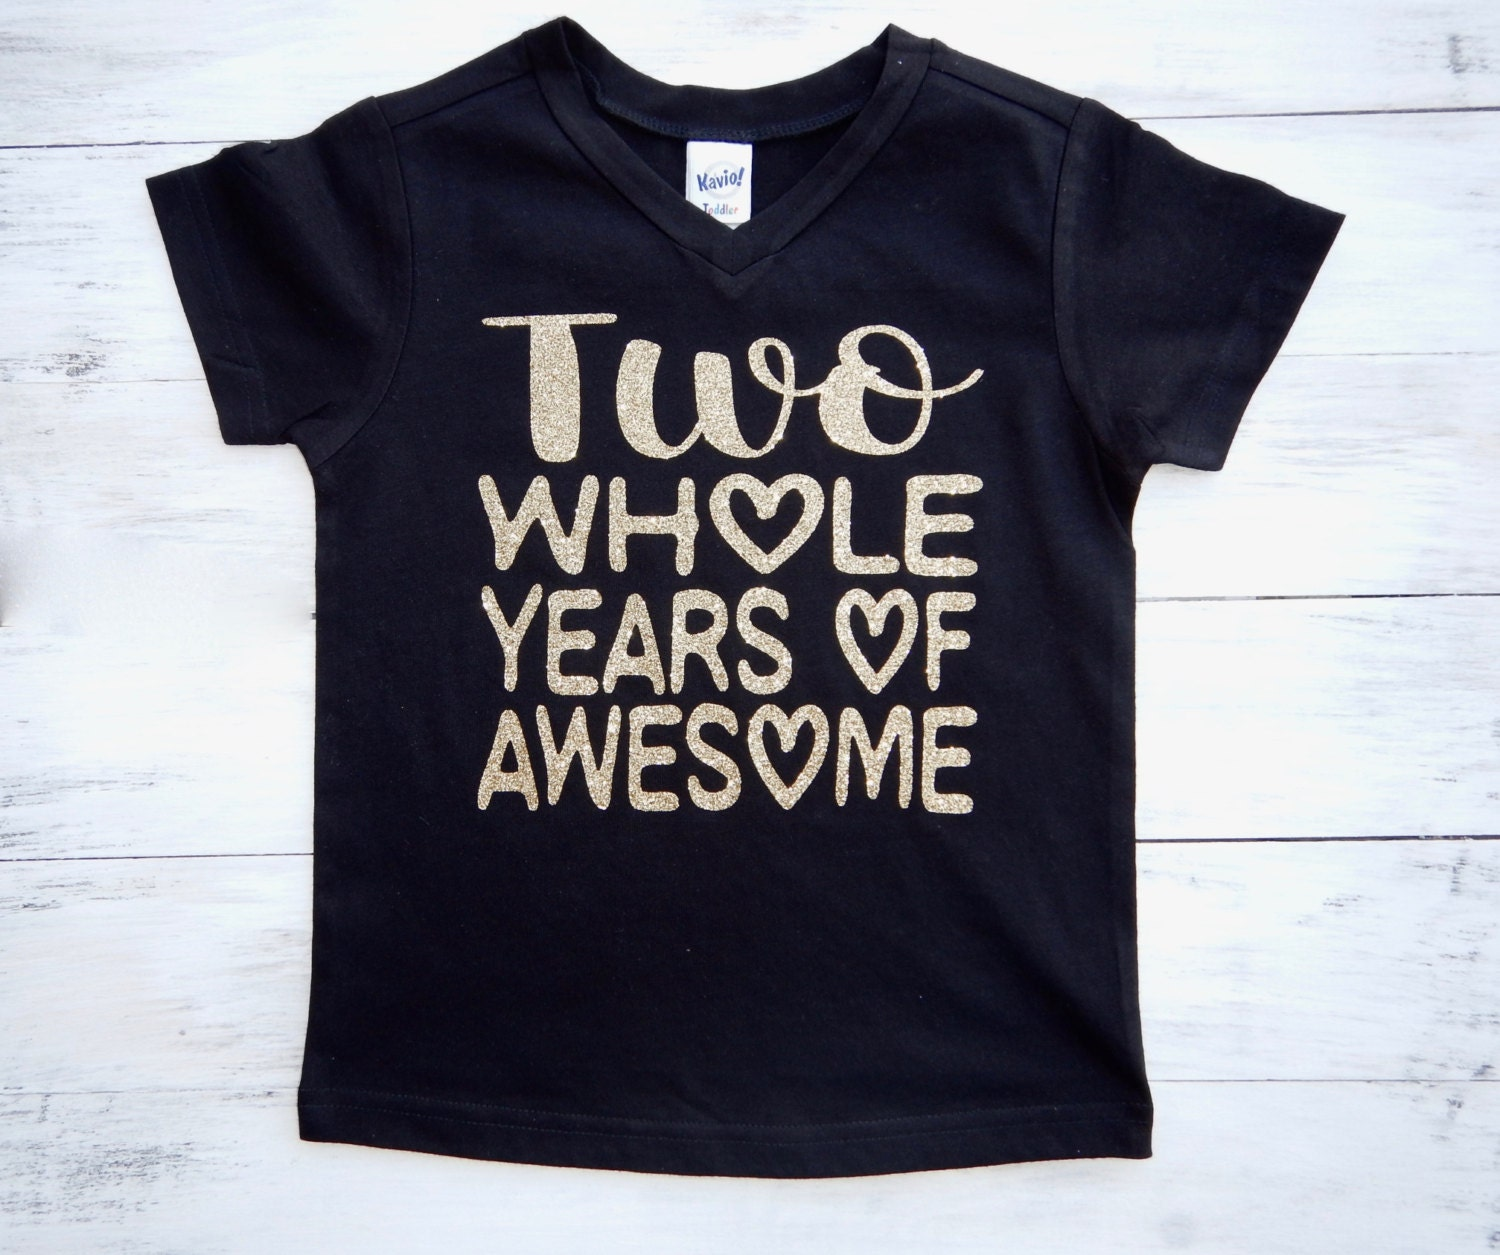 Cover your body with amazing 2 Year Old Birthday t-shirts from Zazzle. Search for your new favorite shirt from thousands of great designs!